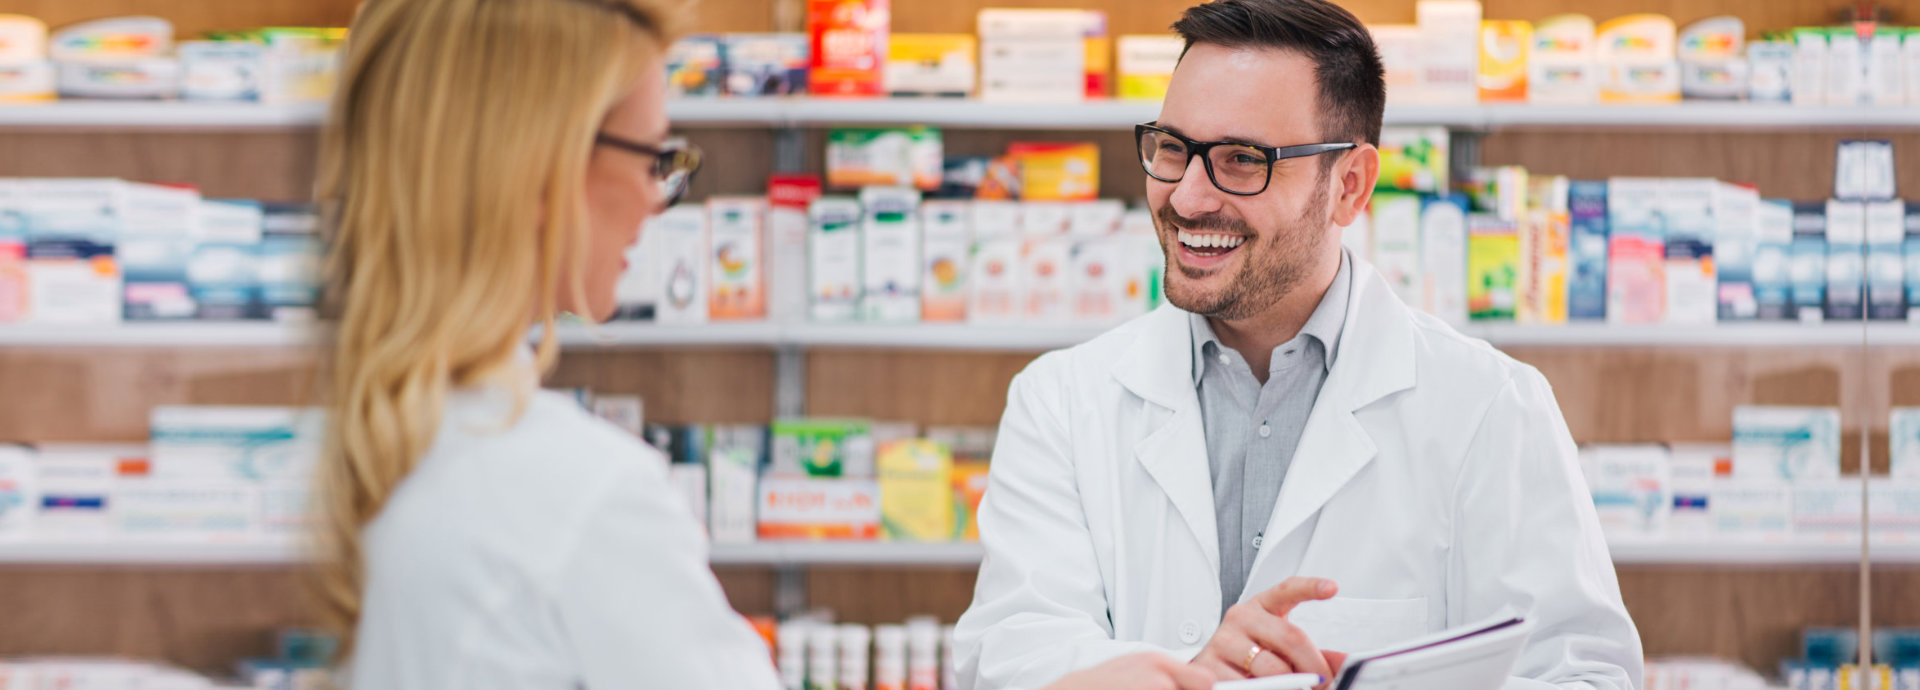 a pharmacist chatting with a lady